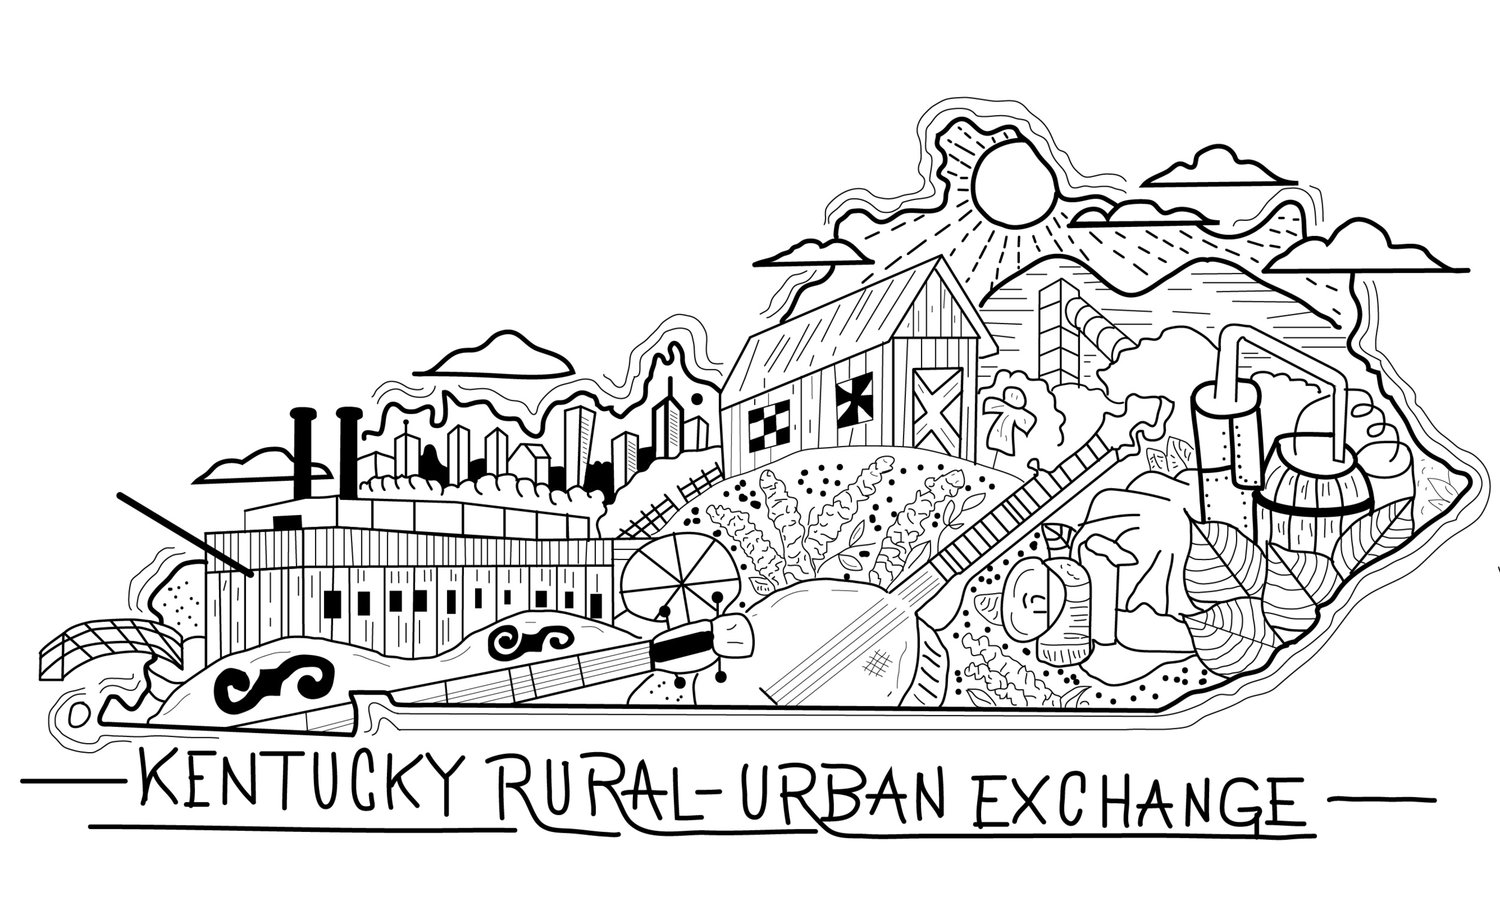 Kentucky Rural-Urban Exchange